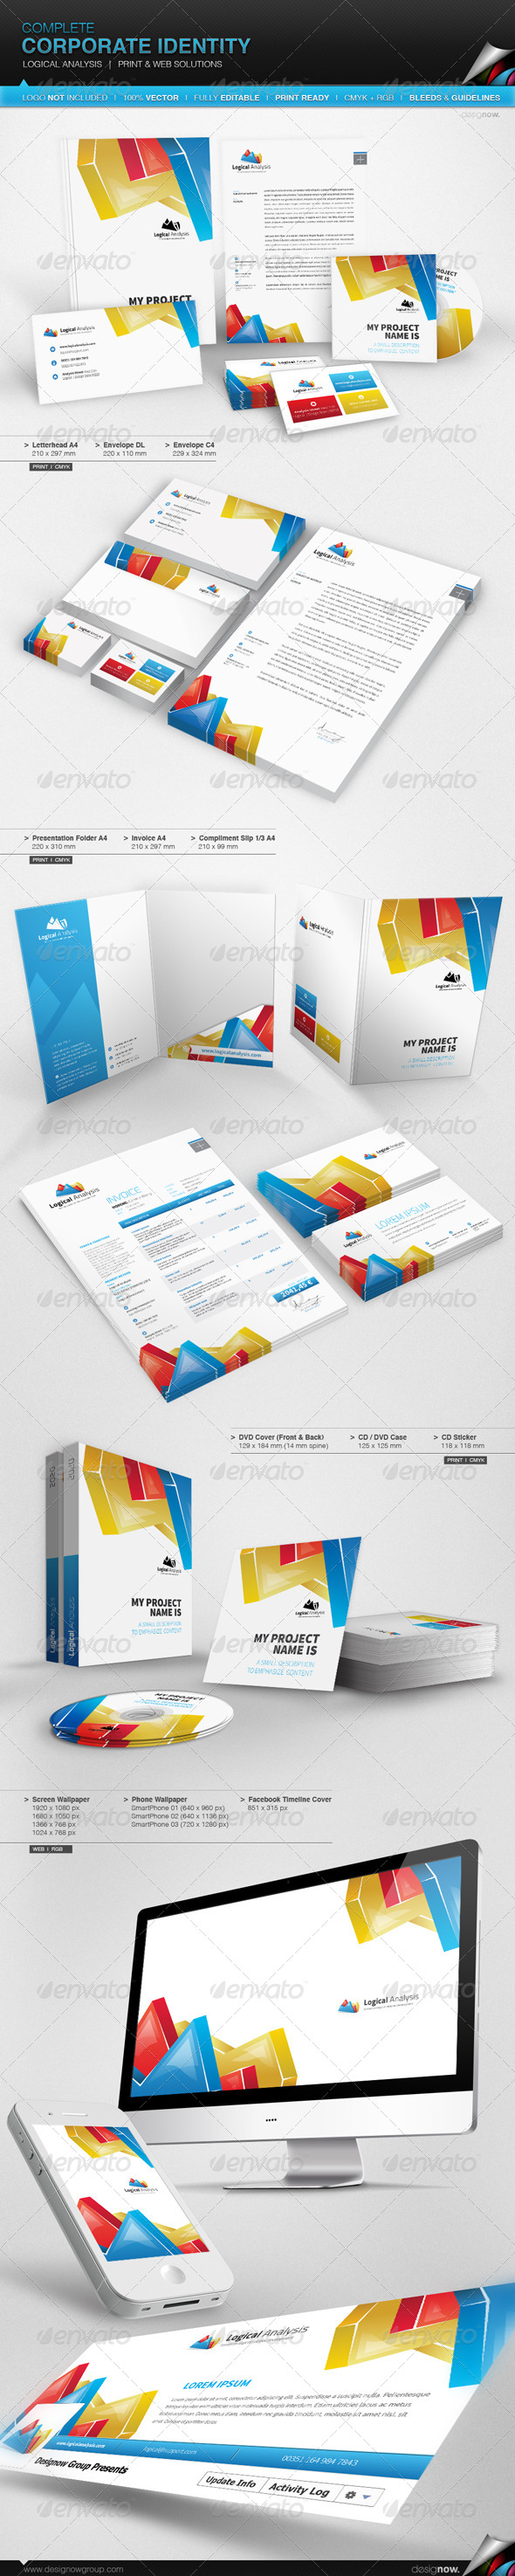 GraphicRiver Corporate Identity Logical Analysis 5506959